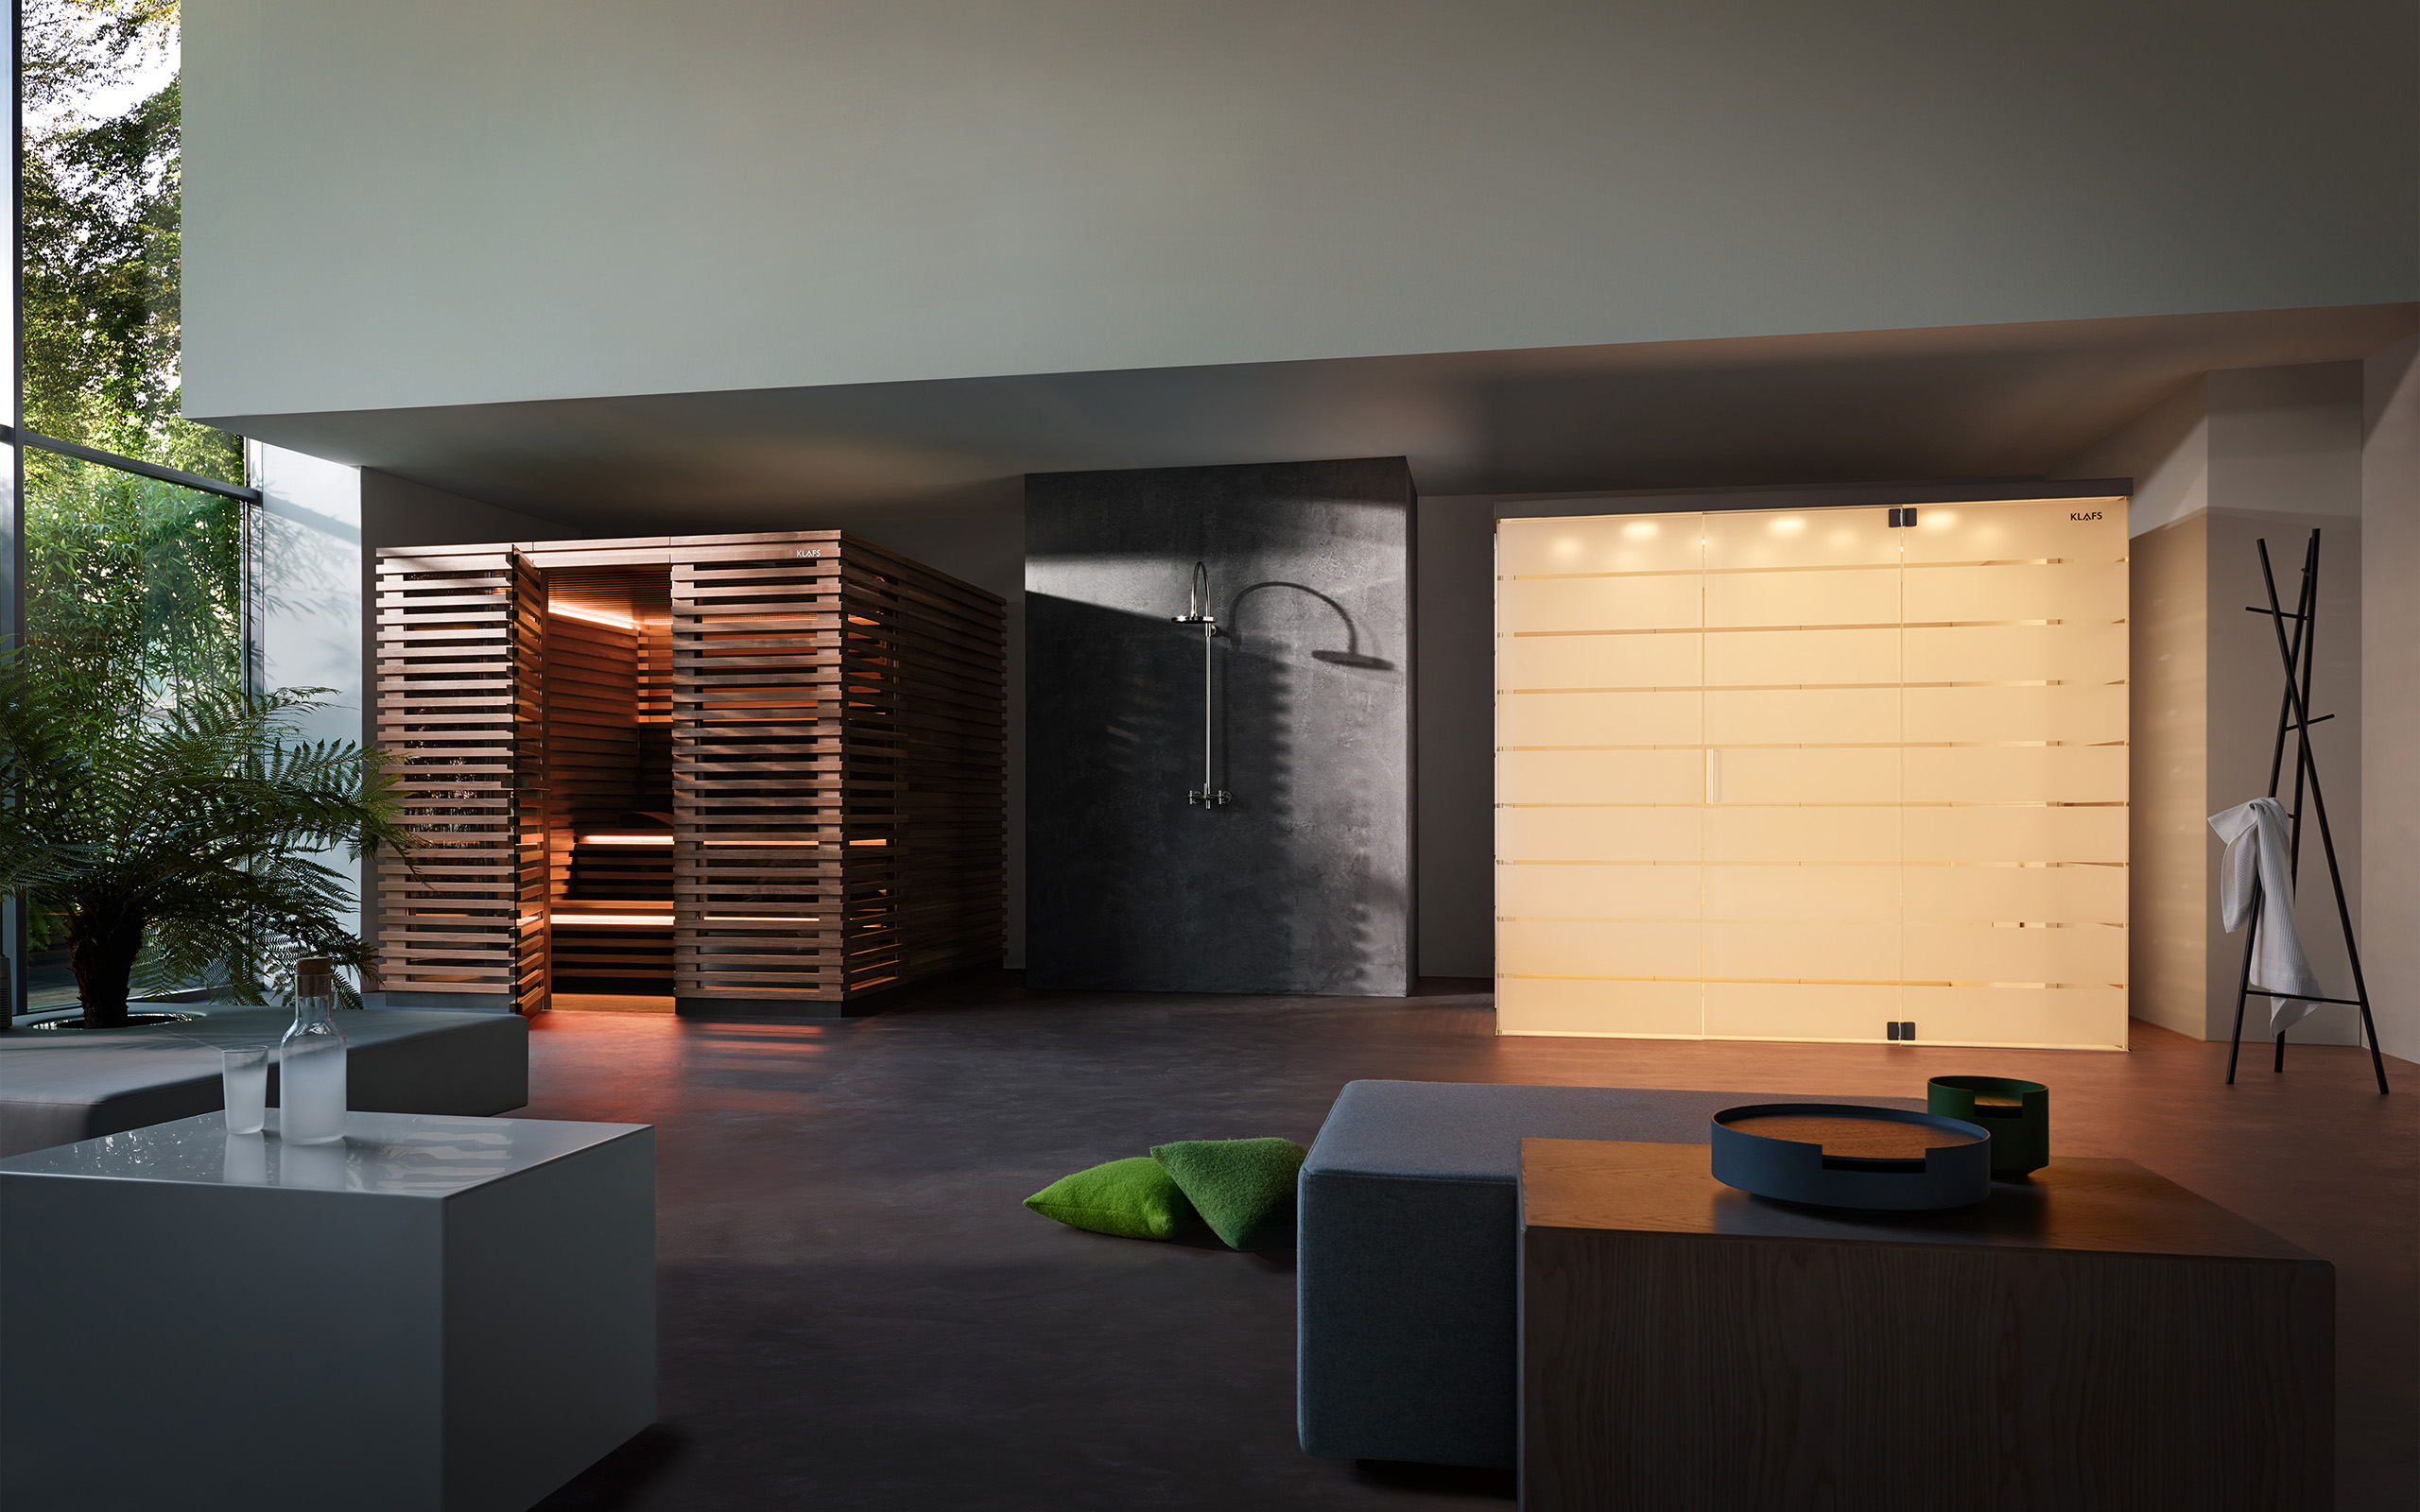 home steam room design. Matteo Thun Design Sauna And Steam Bath: Wood, Glass, Privacy. Home Room